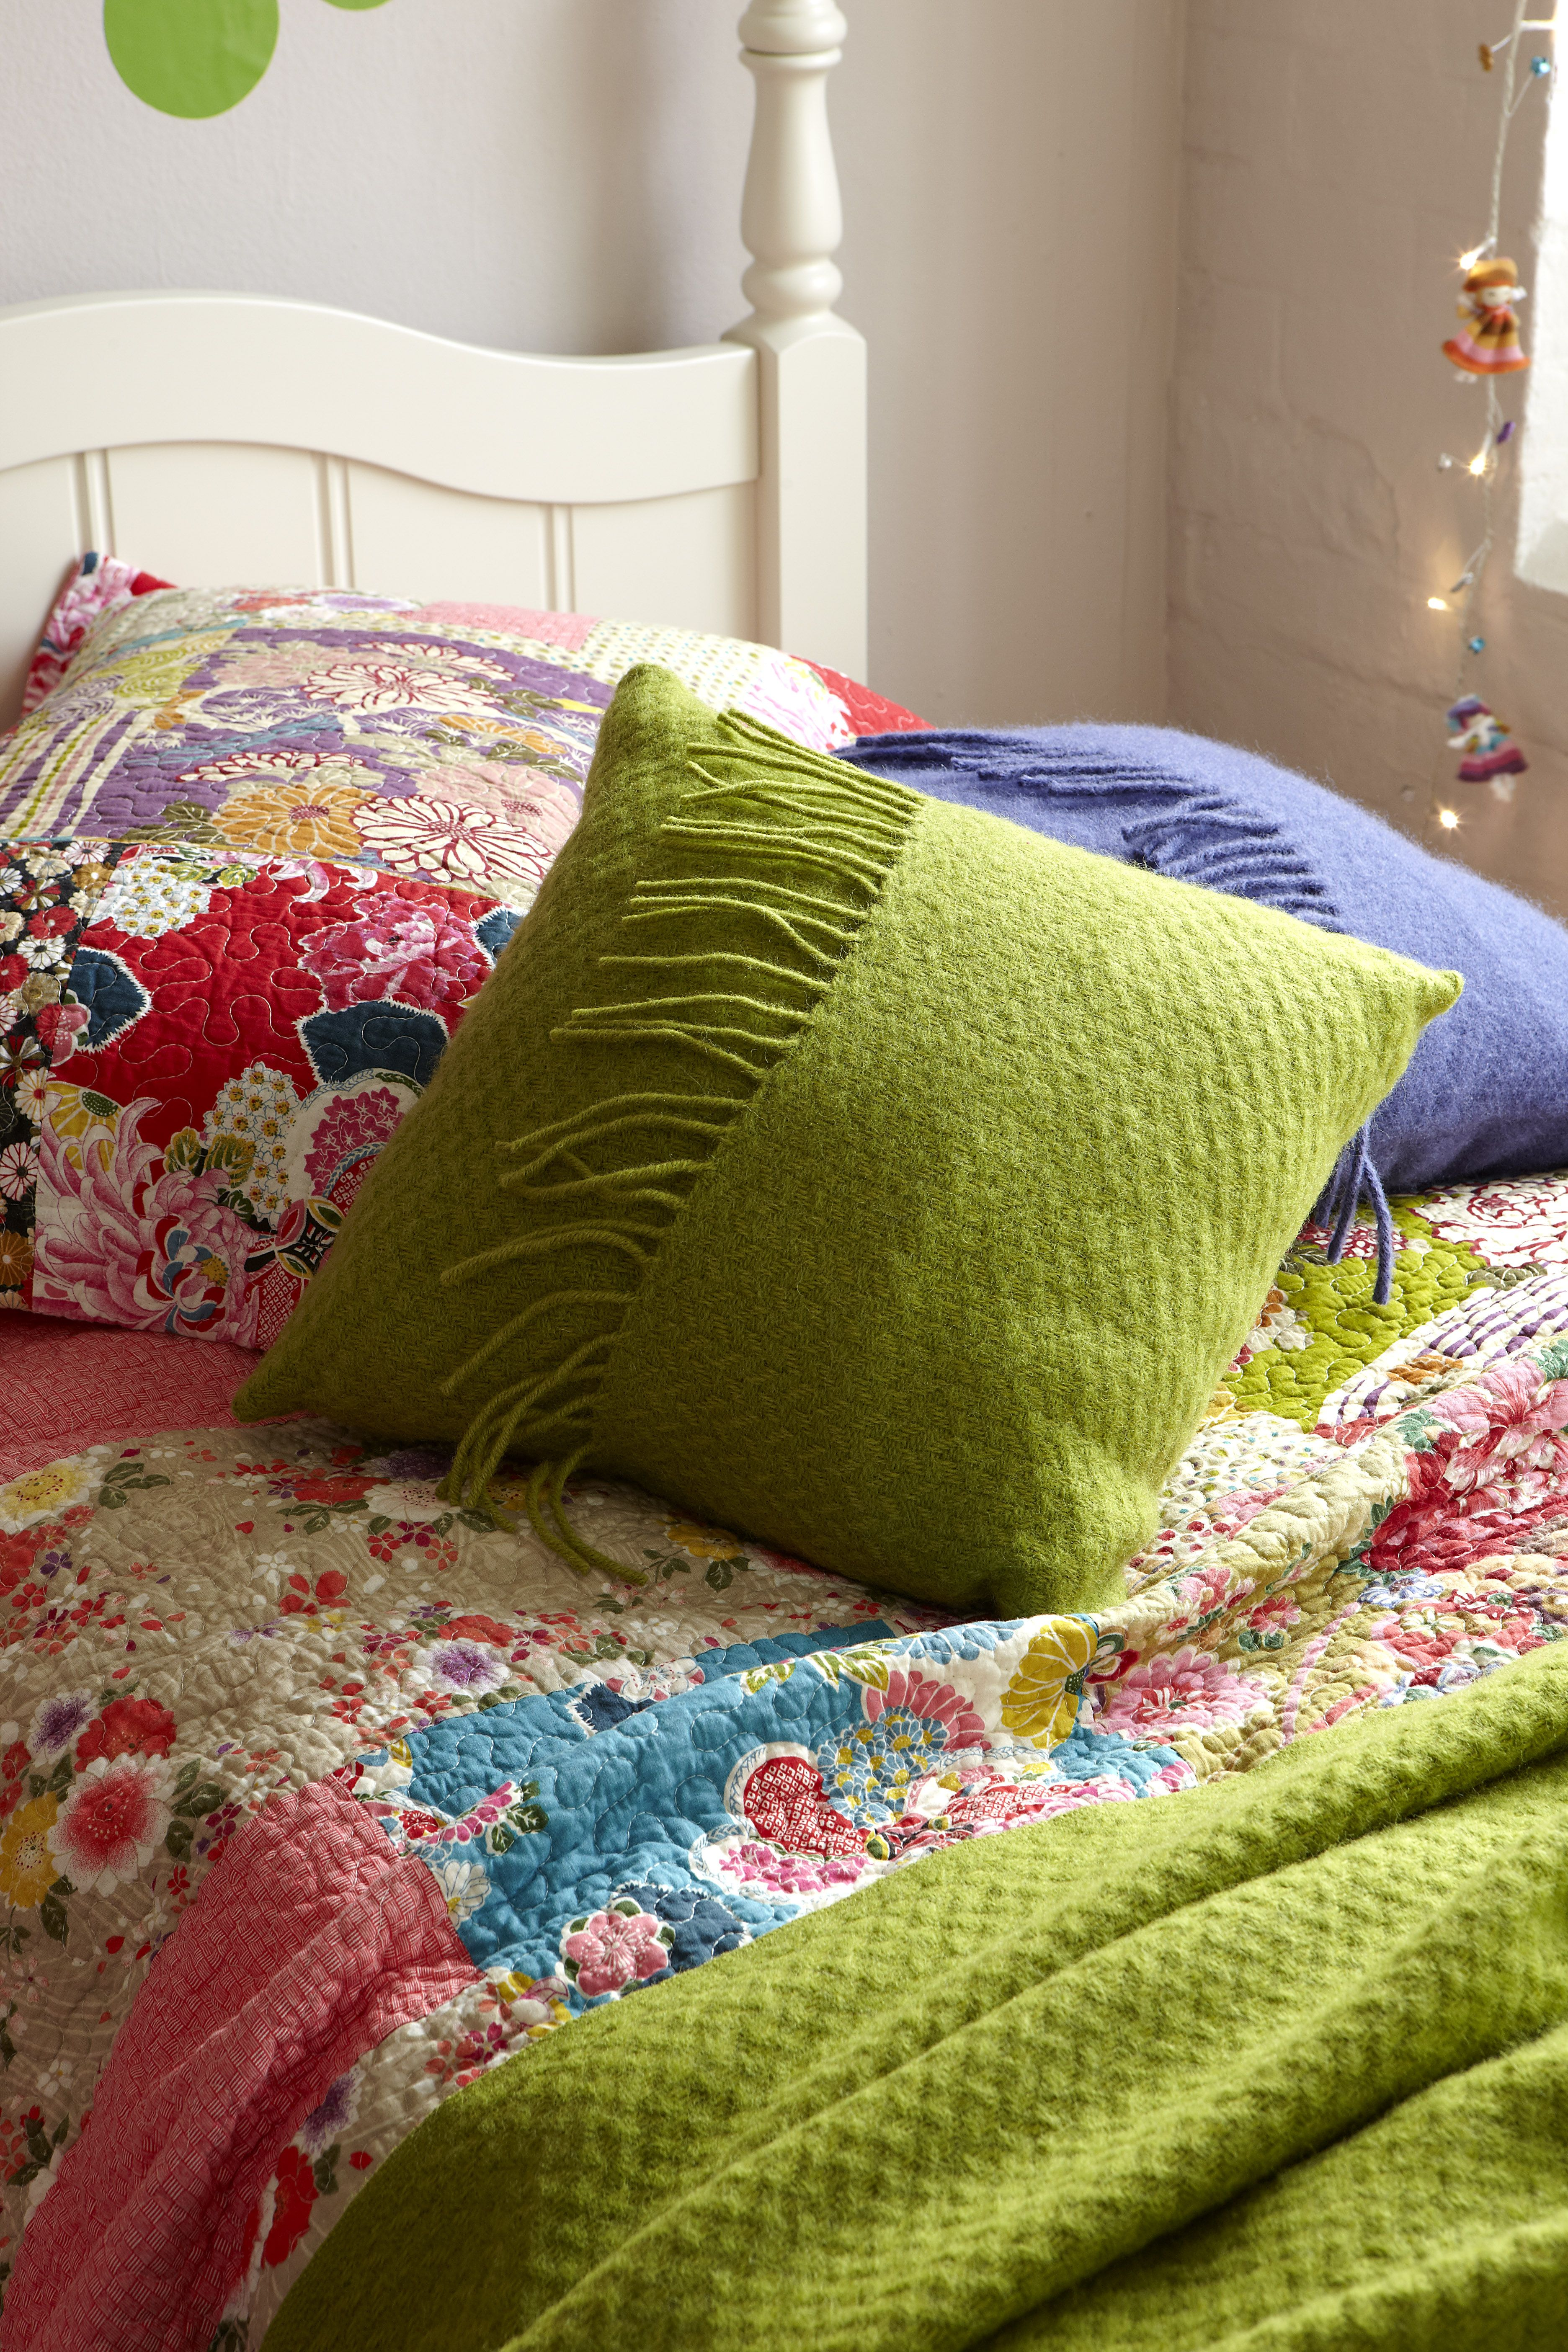 aspace kizzy quilt parma violet cushion grass green cushion  - aspace kizzy quilt parma violet cushion grass green cushionbohemiansummer